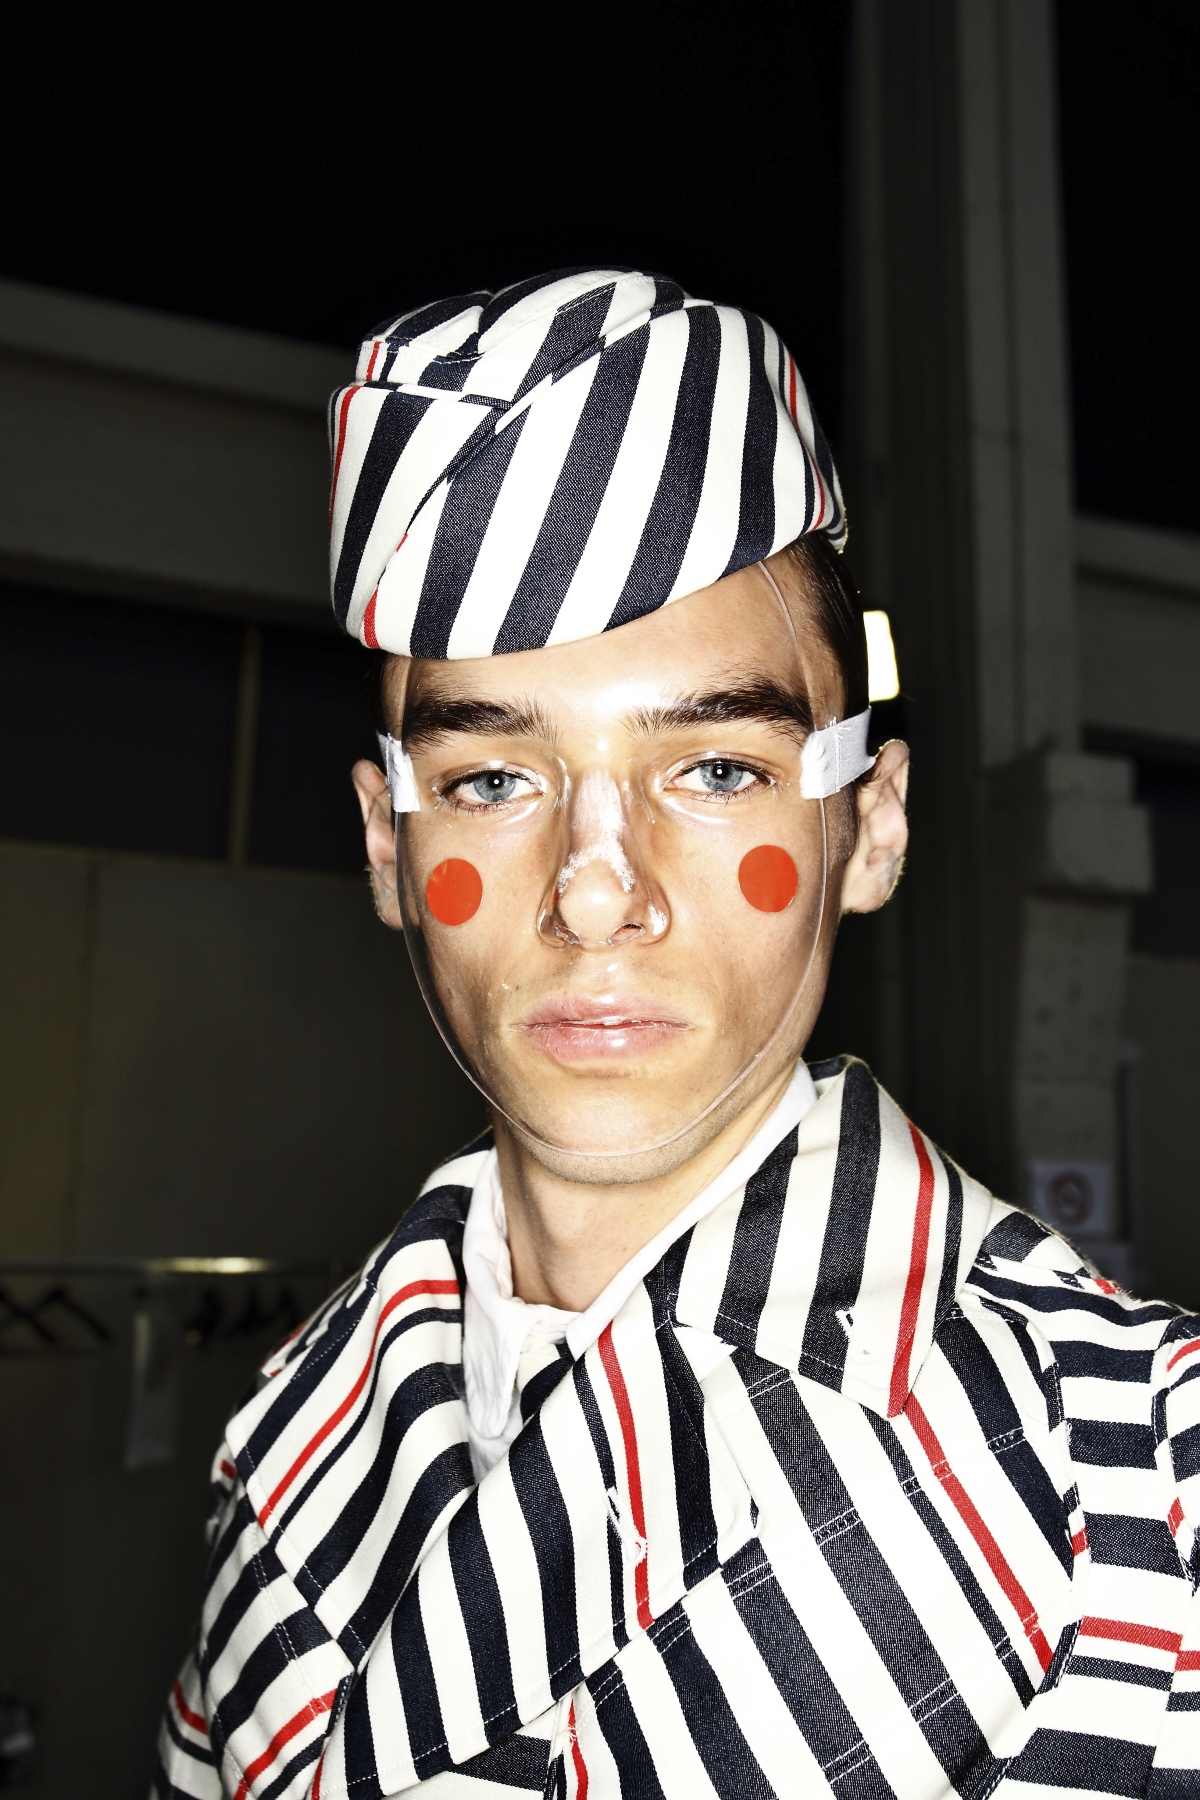 Thom Browne SS15 Men Fashion Show Paris Backstage